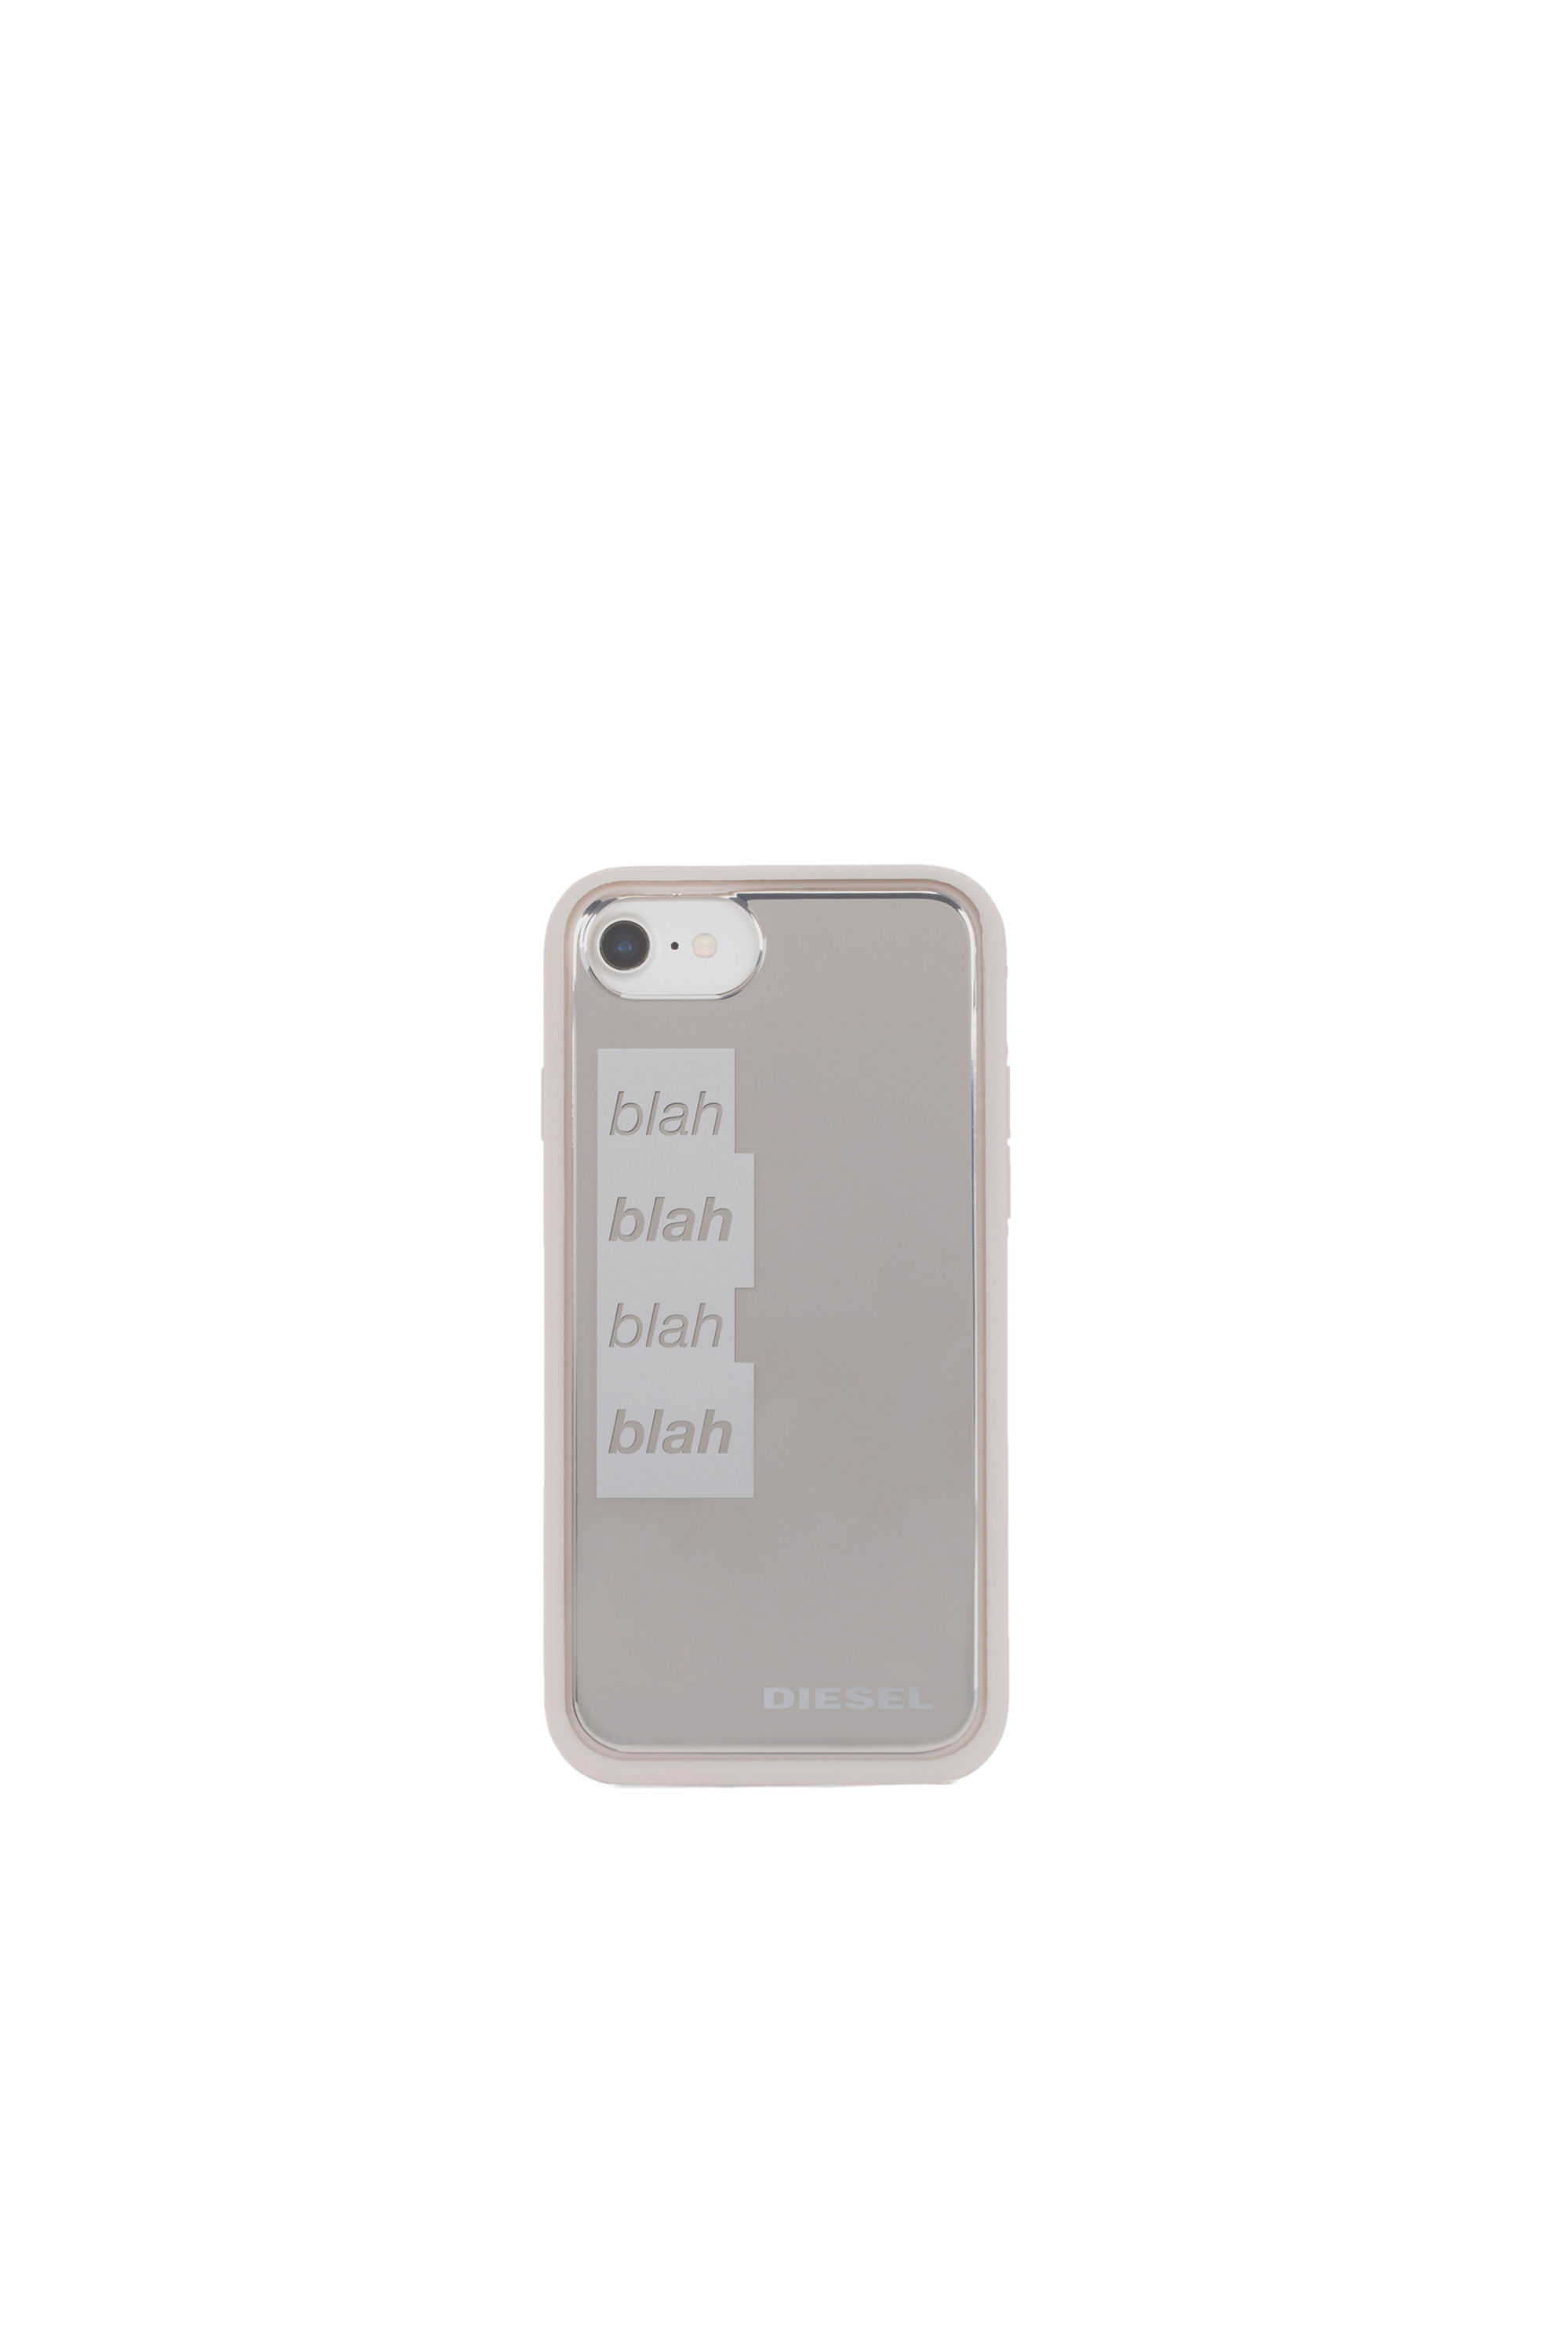 Diesel - BLAH BLAH BLAH IPHONE 8/7/6s/6 CASE,  - Cases - Image 4